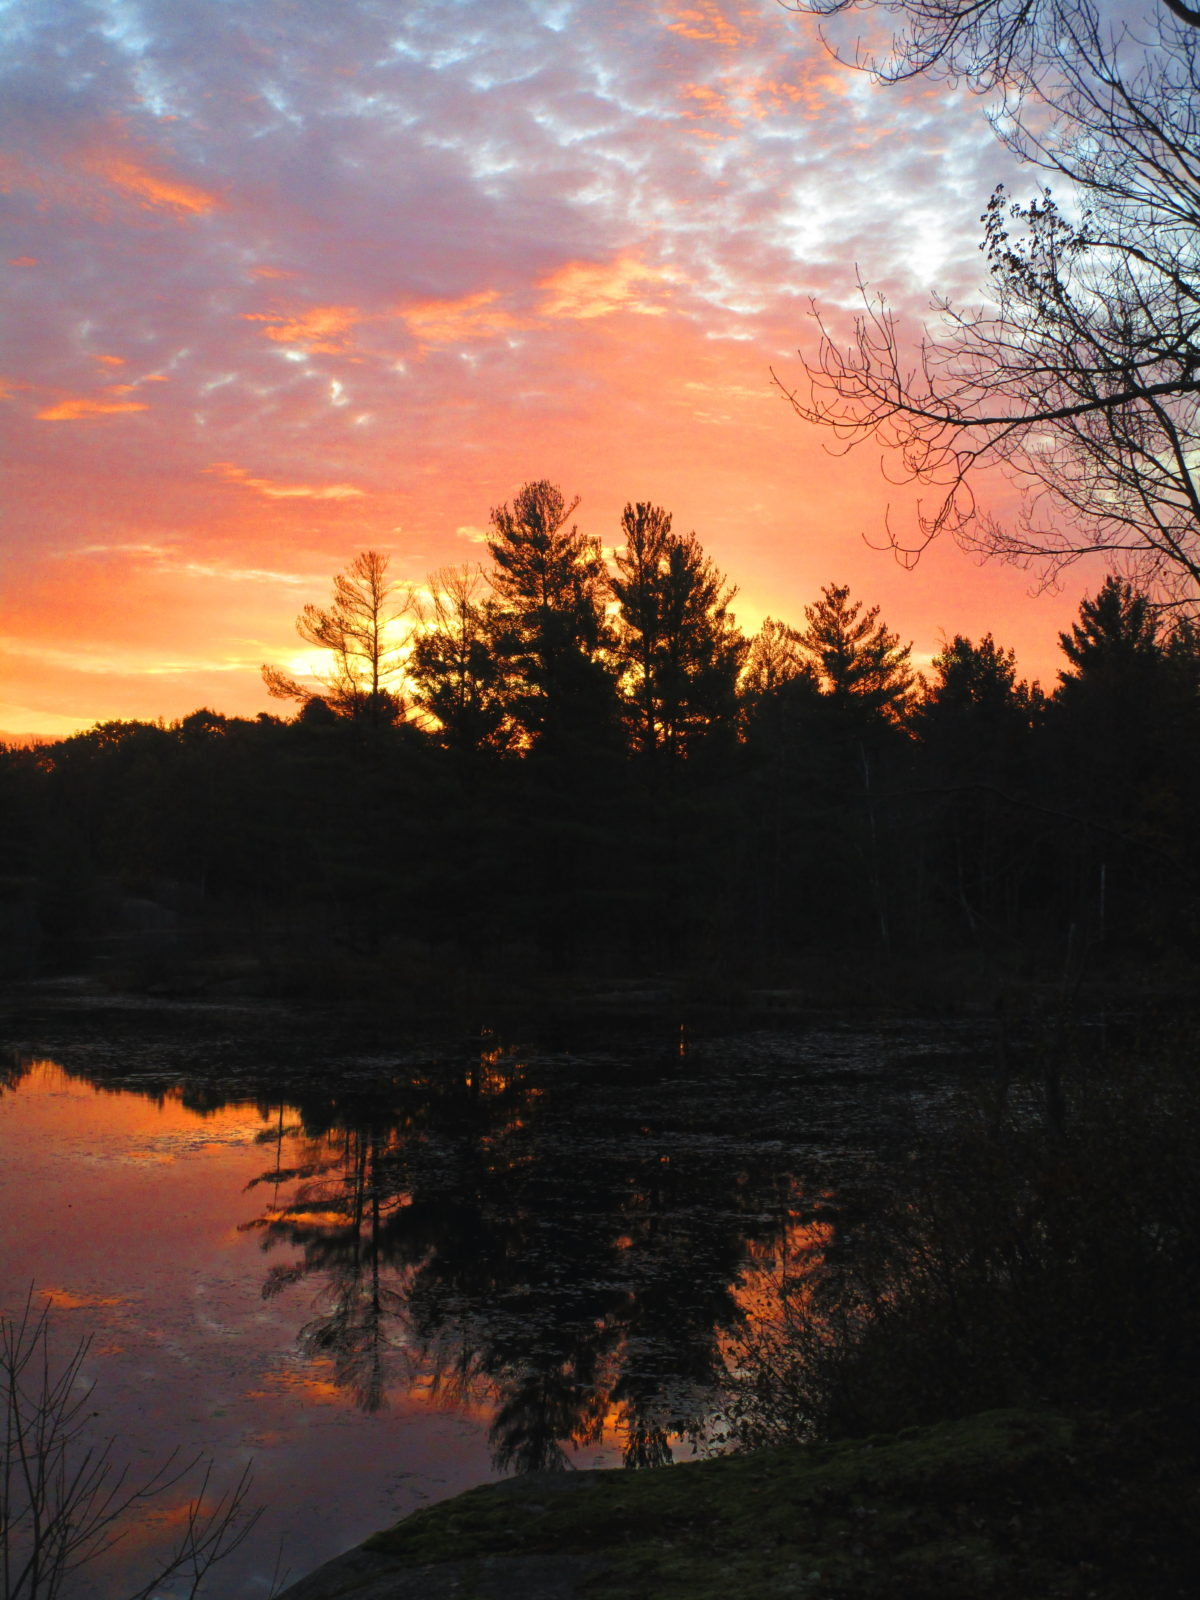 Across a pond, pine trees are silhouetted against a pink and blue dawn.